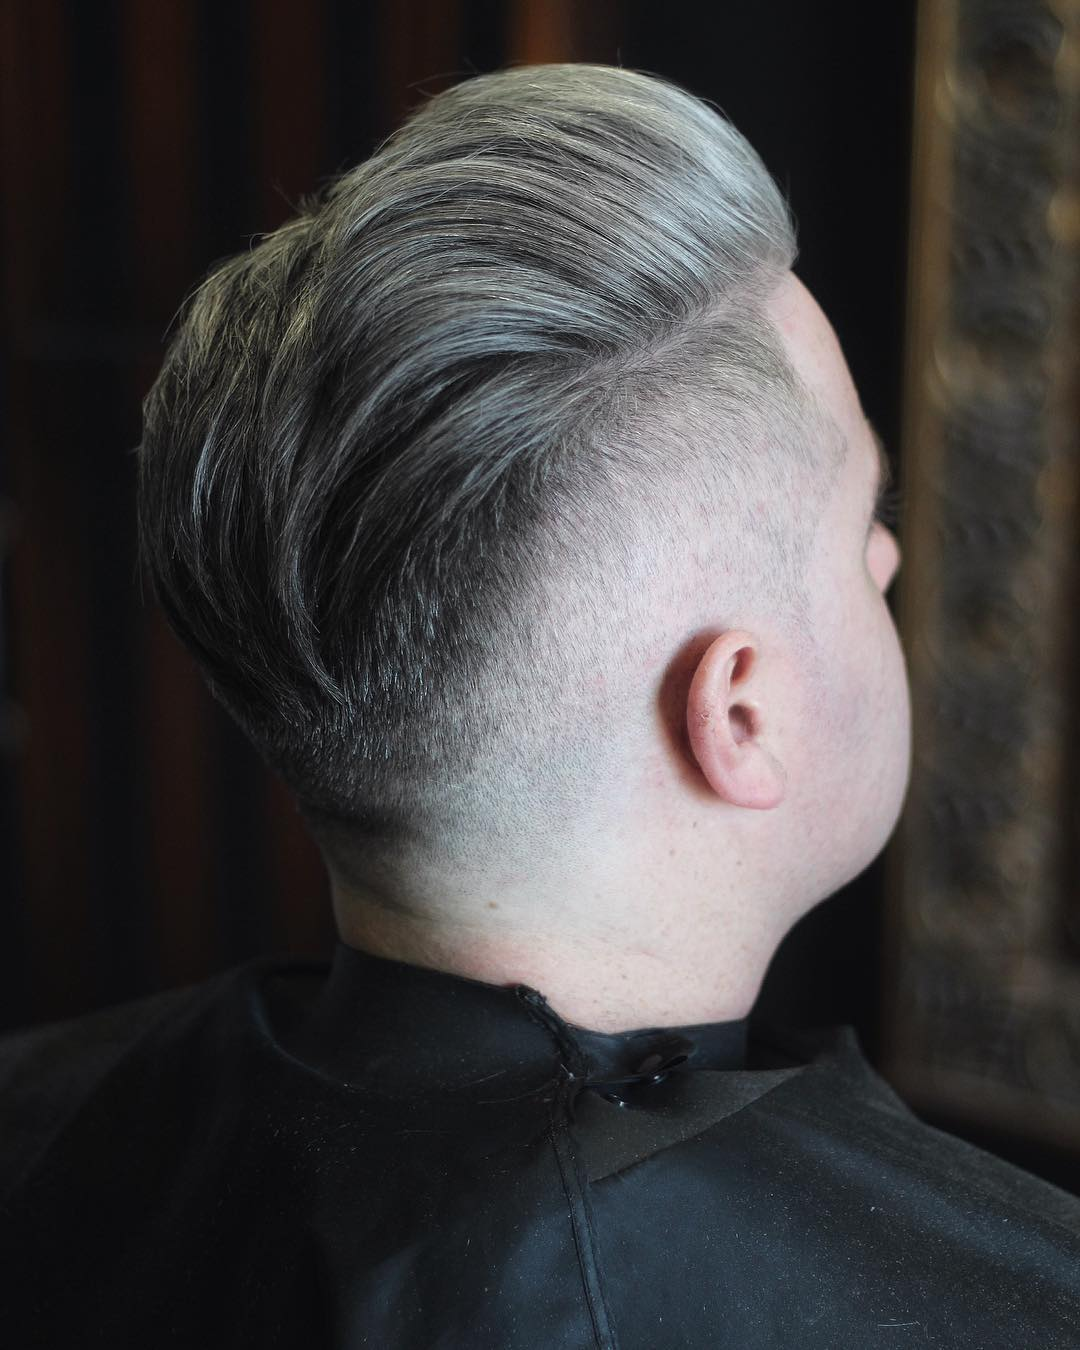 Undercut hairstyle for older men